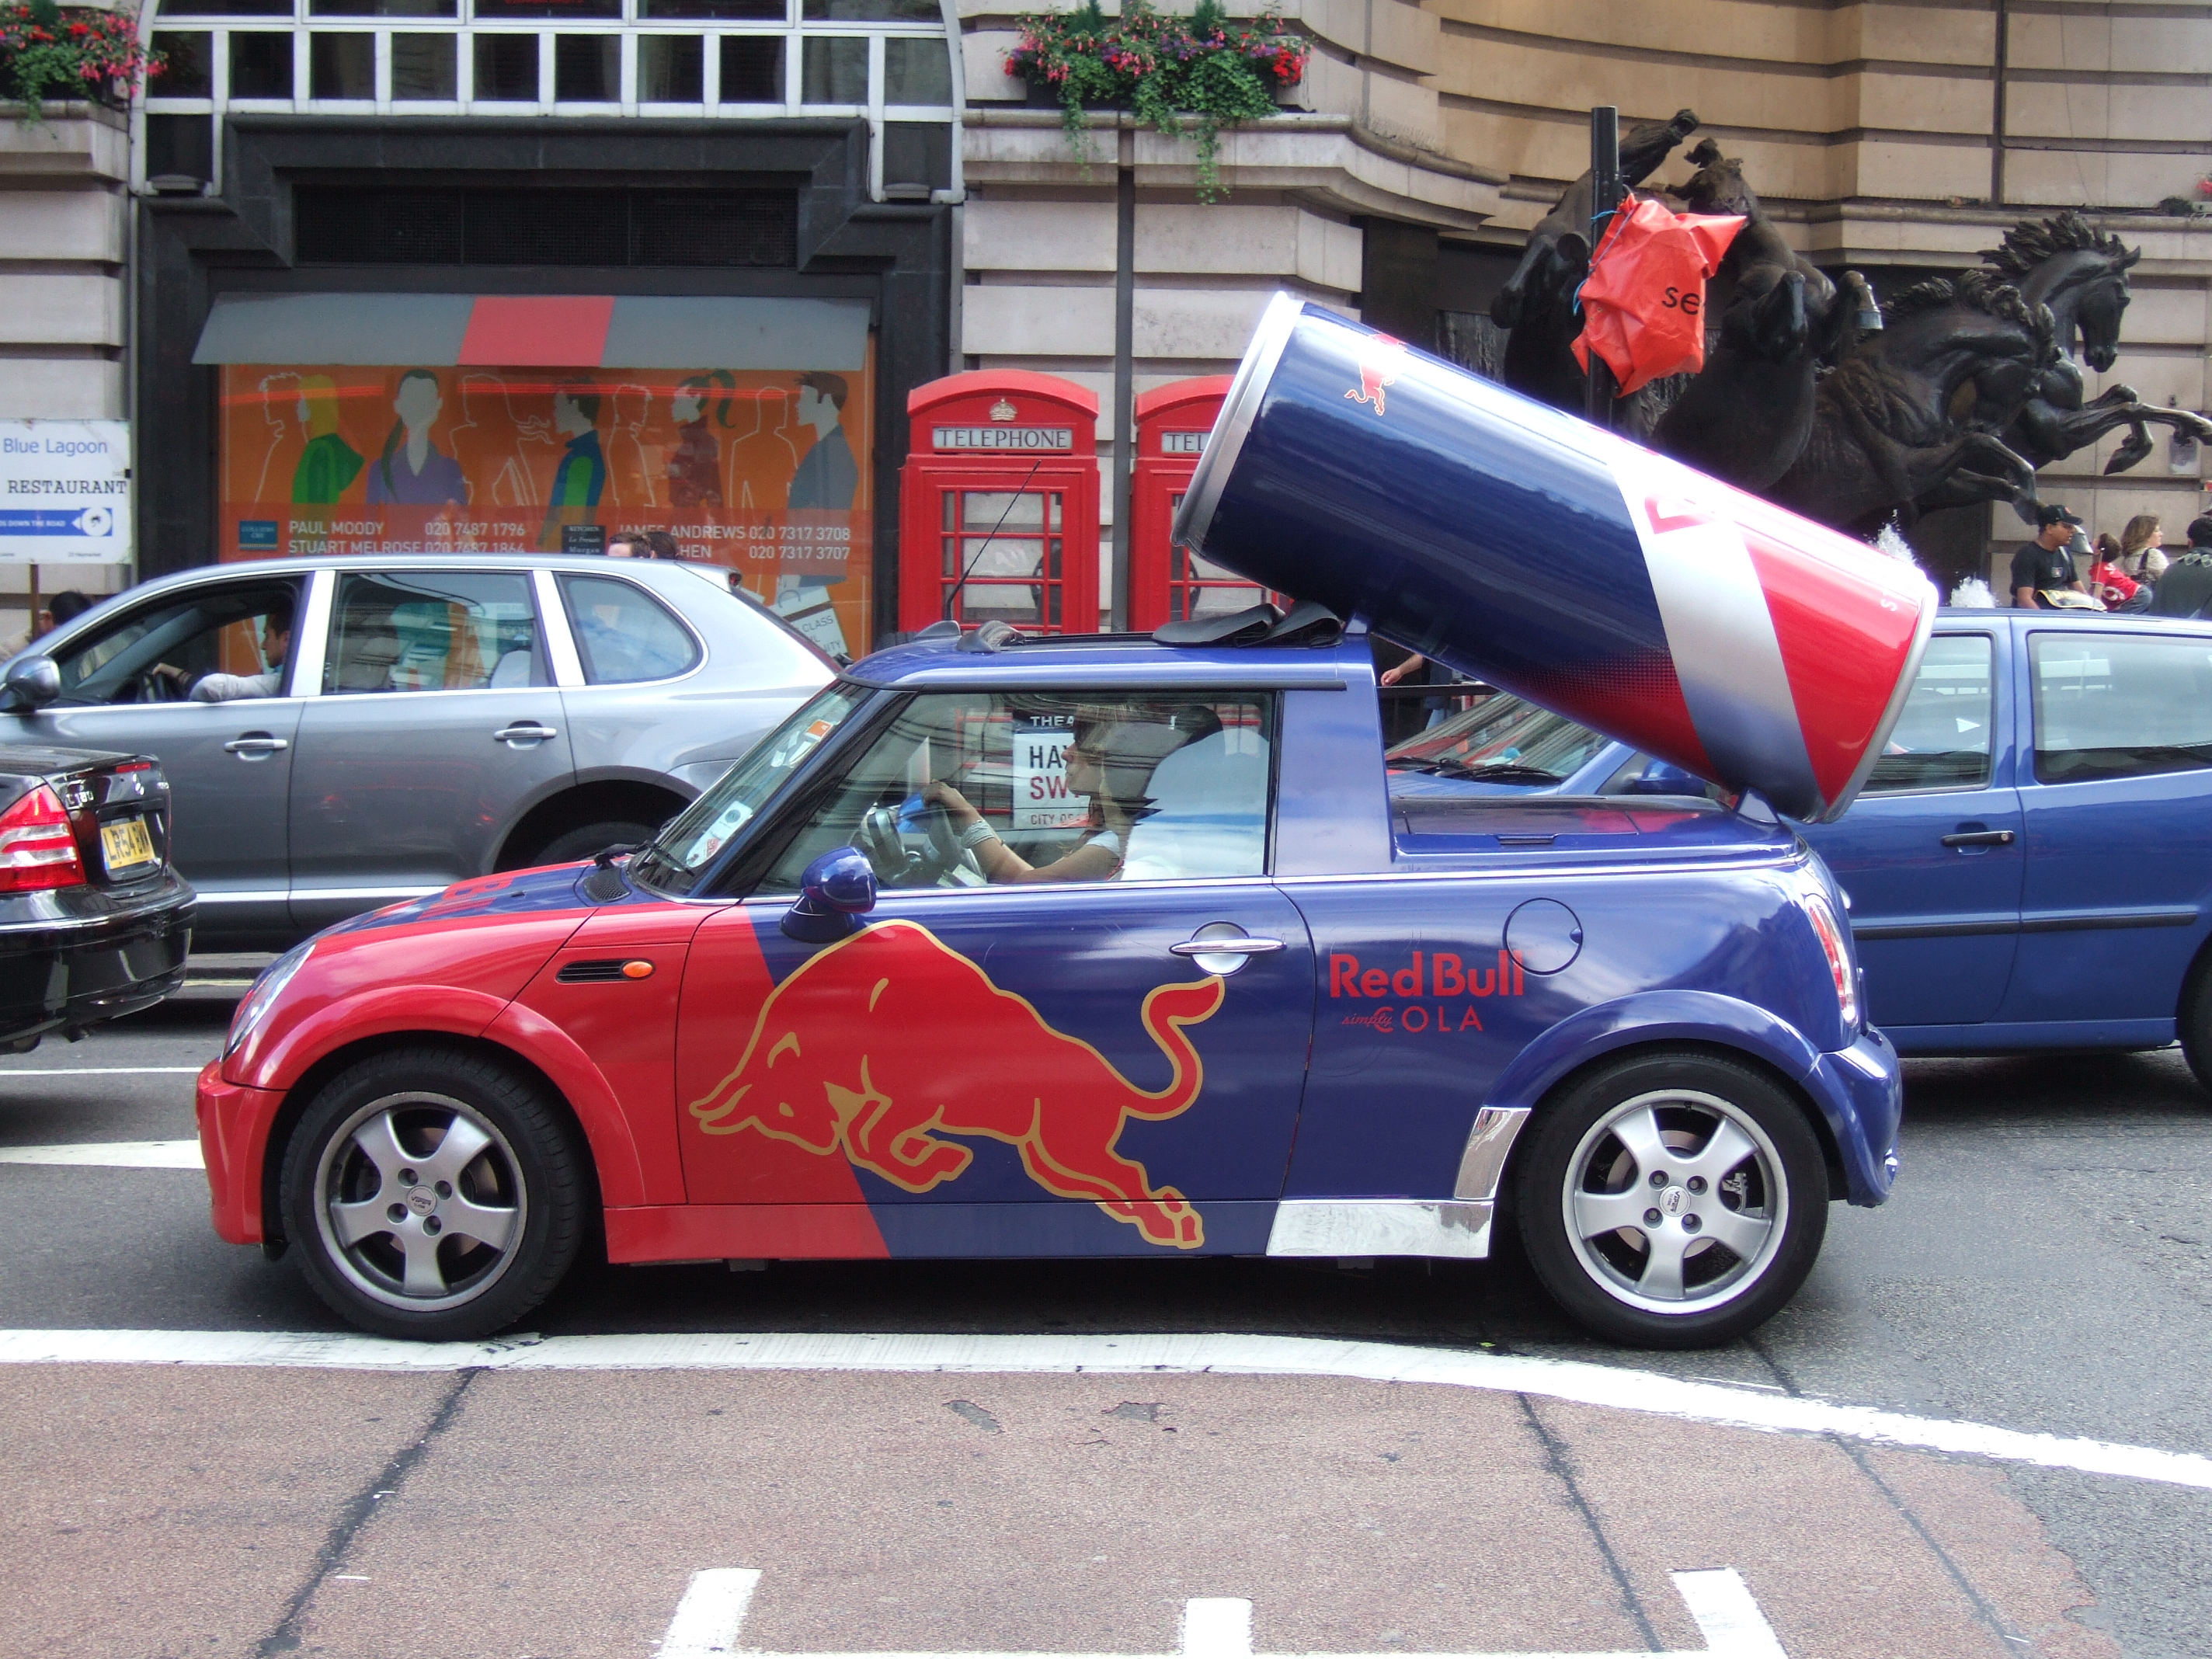 file red bull cola mini at piccadilly. Black Bedroom Furniture Sets. Home Design Ideas